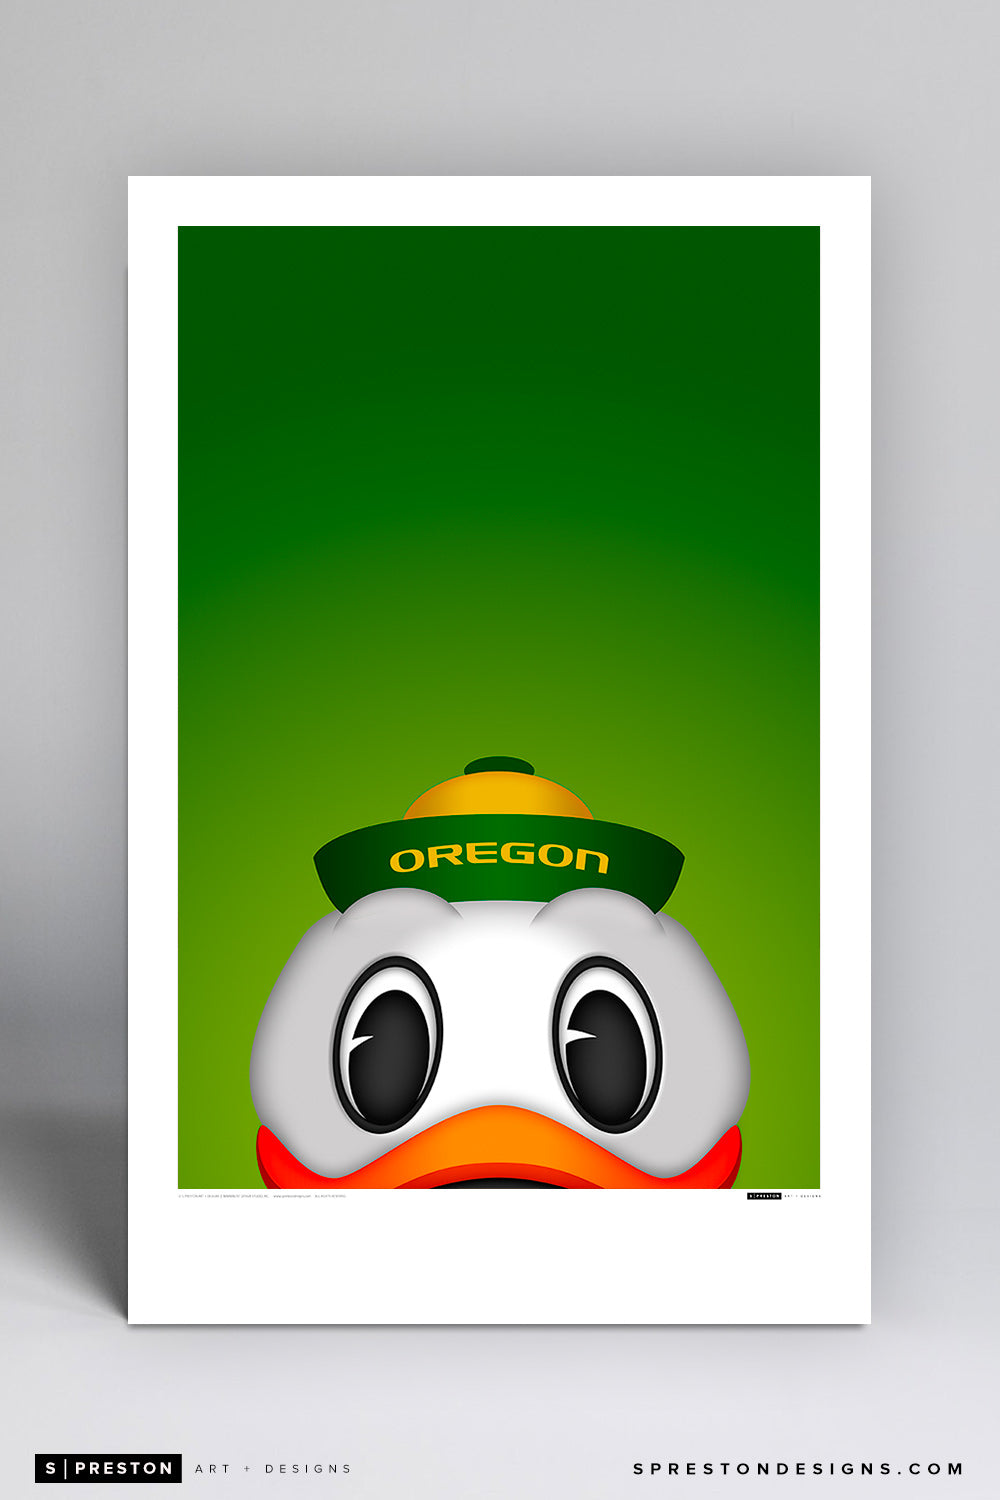 Oregon Duck - Oregon Ducks Poster Print - University of Oregon - S. Preston Art + Designs